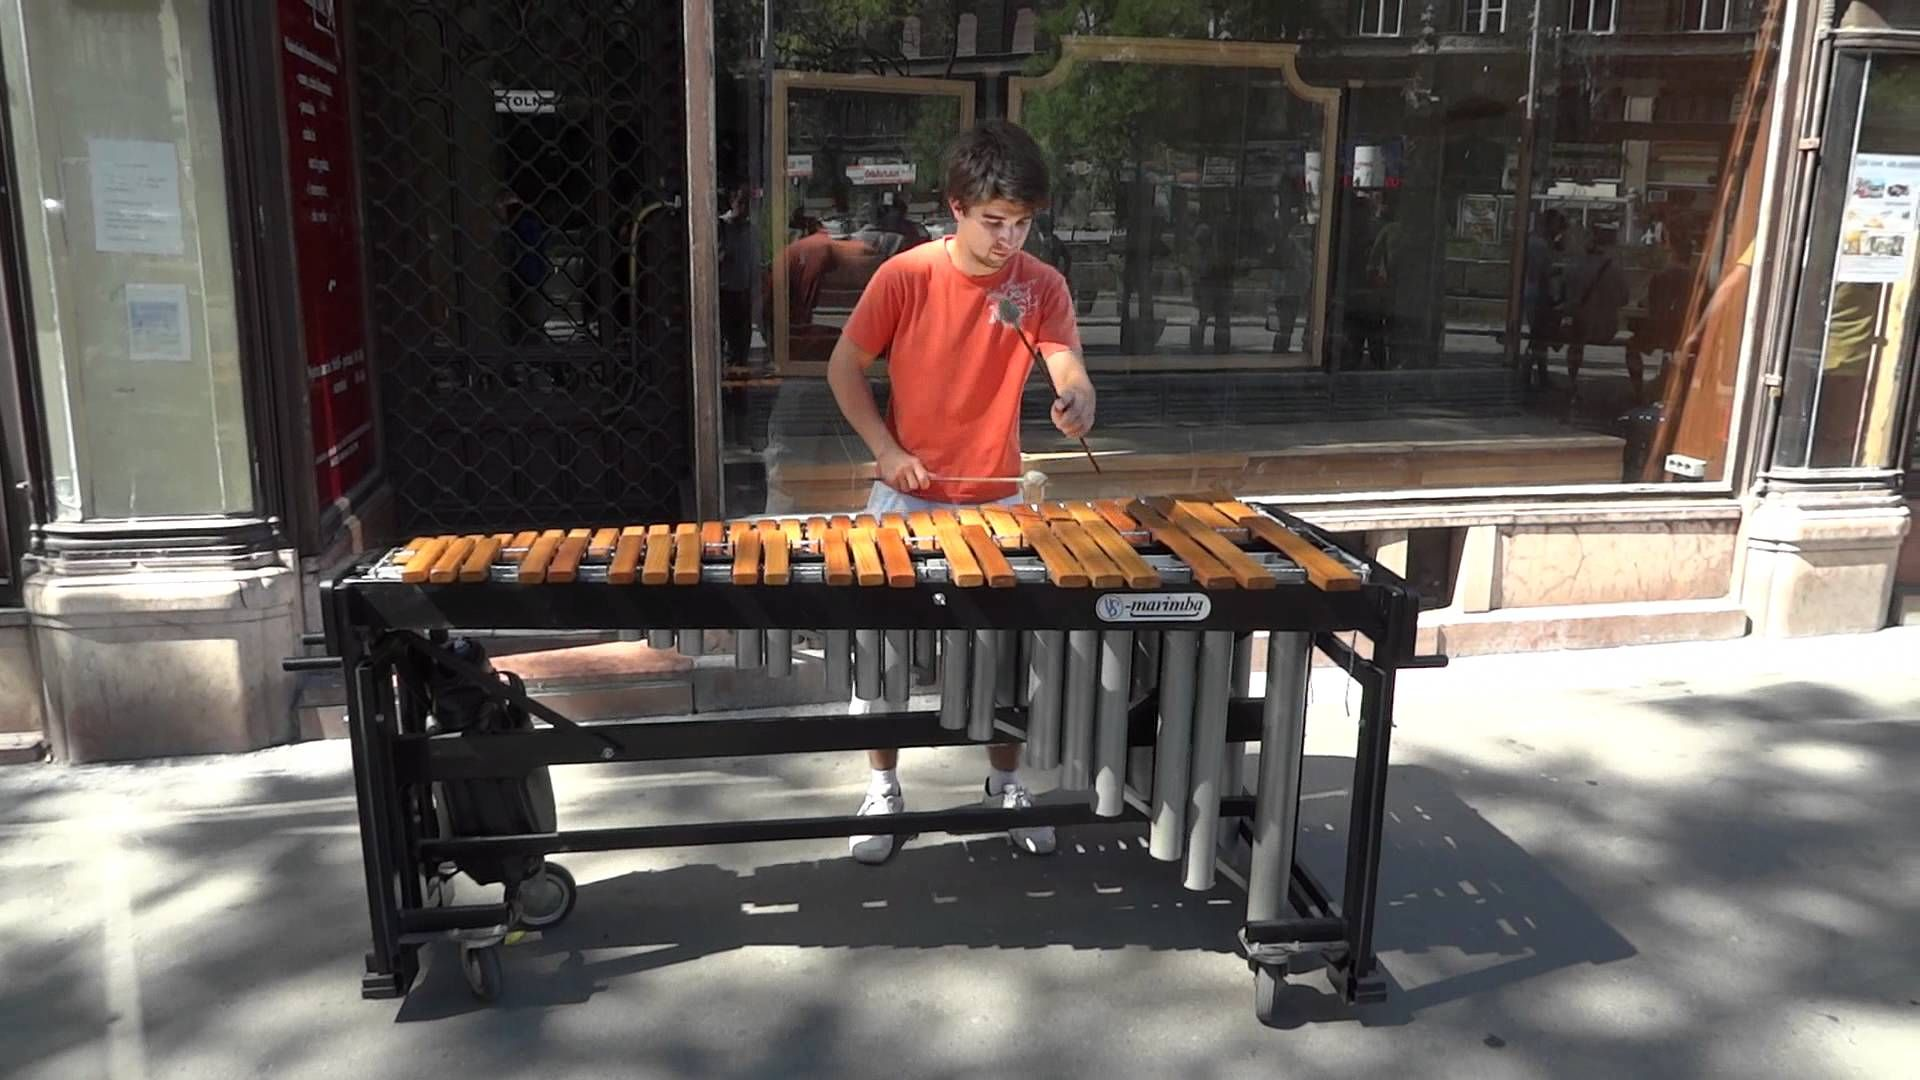 Street musician playing classical music on xylophone [Budapest] HQ 1080p